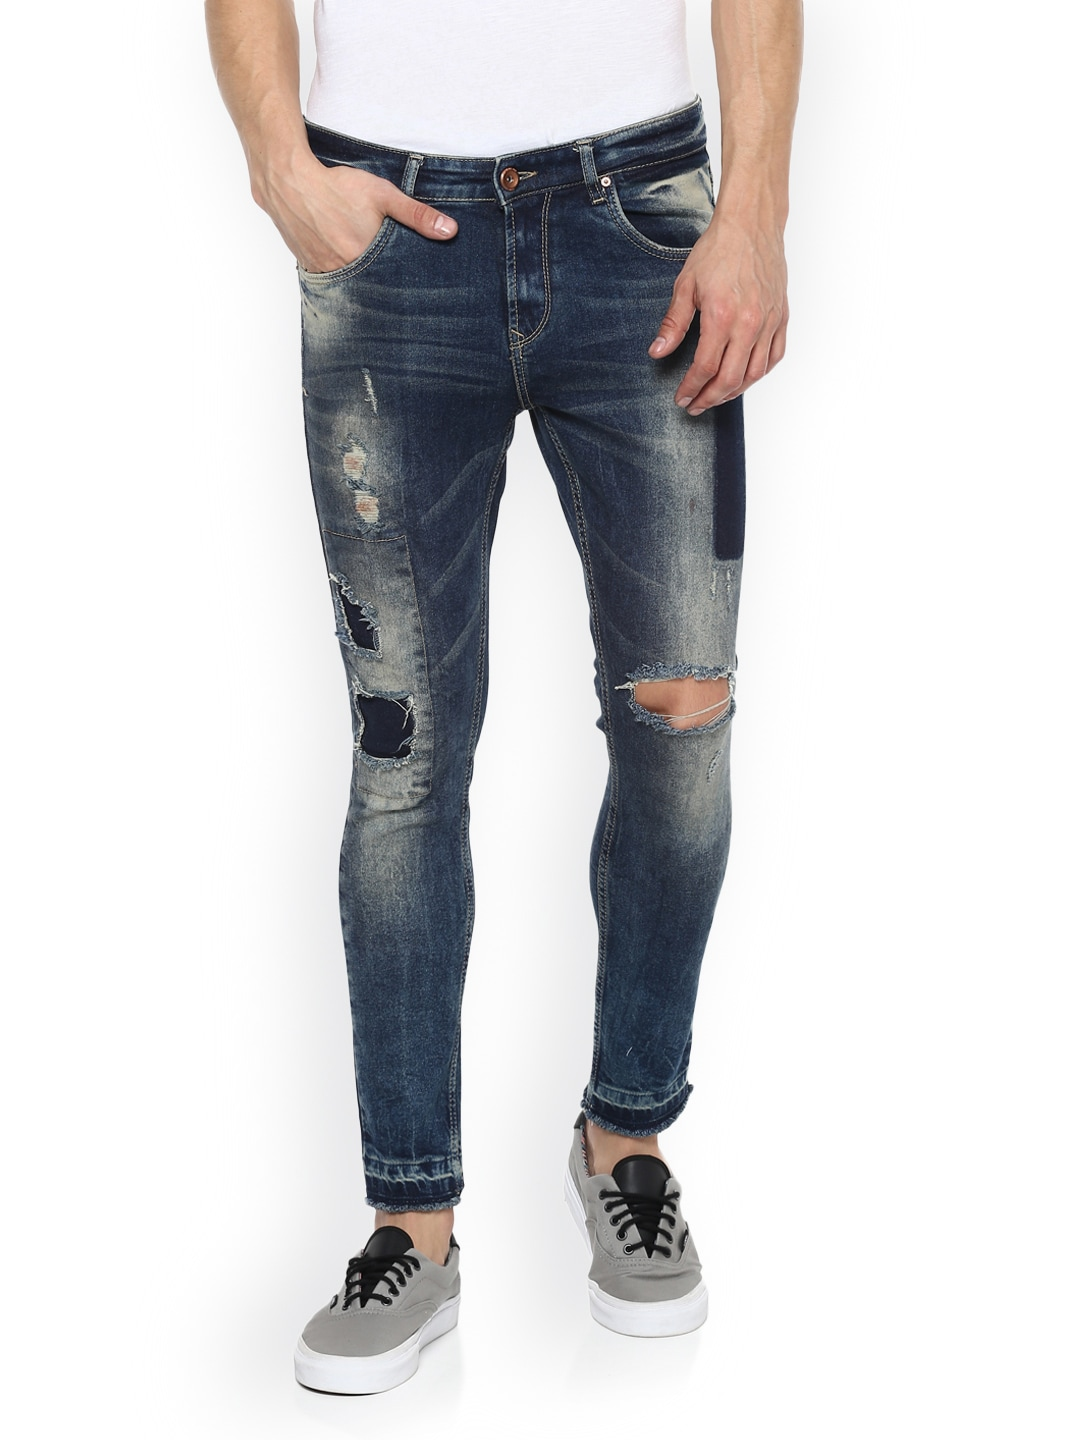 46da04afd17 Spykar Ripped Denim Jeans Leggings - Buy Spykar Ripped Denim Jeans Leggings  online in India